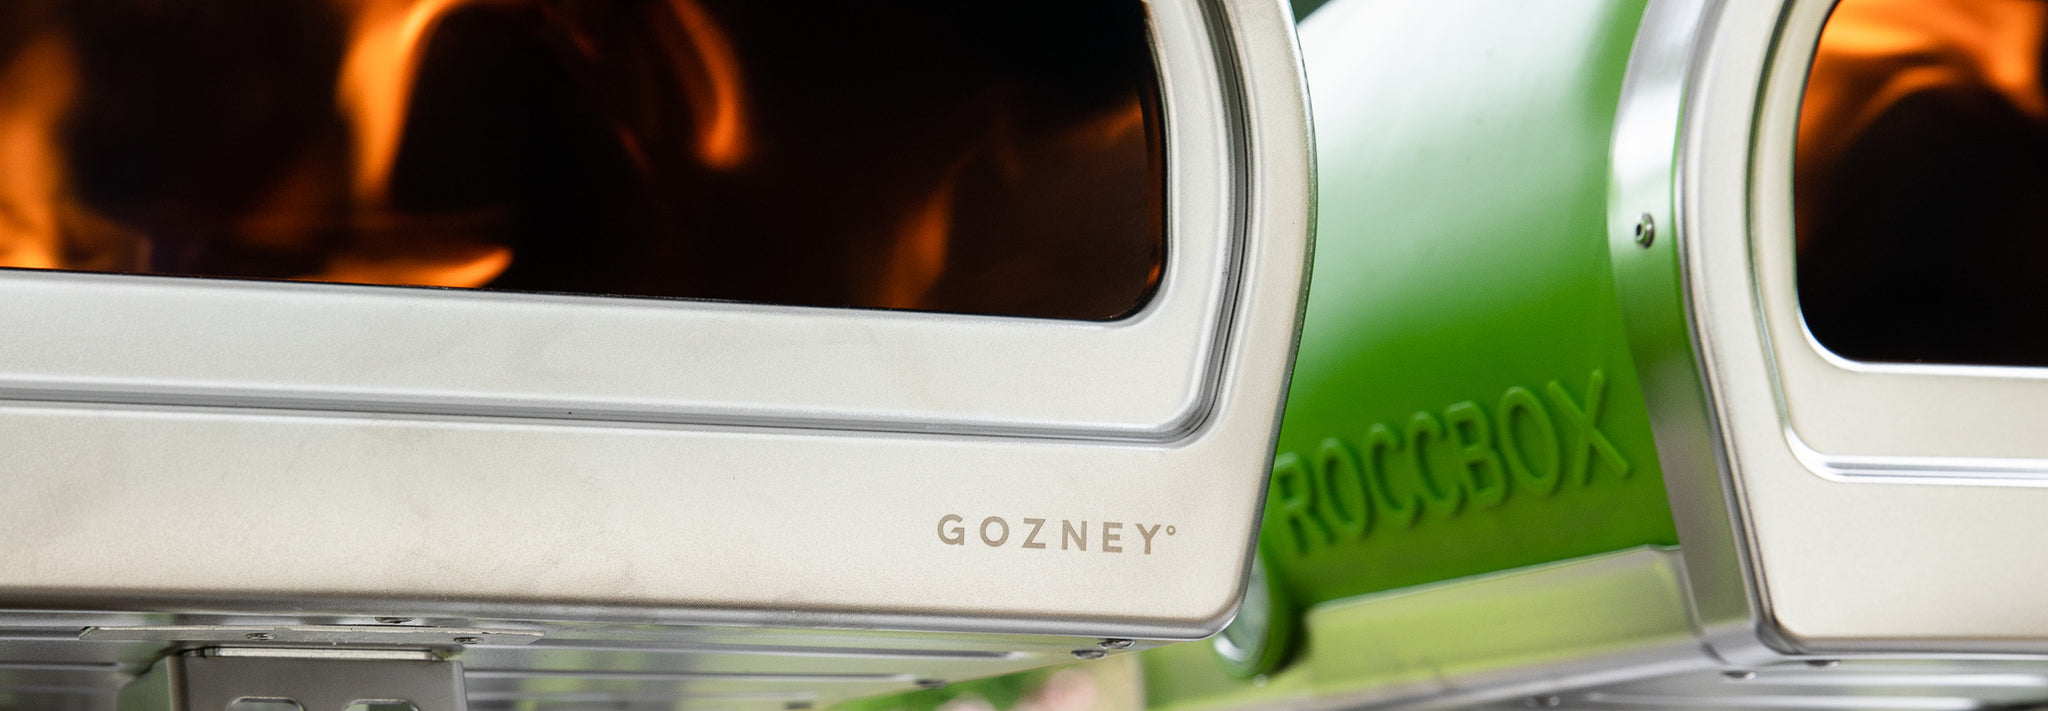 Gozney gives out of work chefs opportunity to earn money at home with a Gozney Roccbox